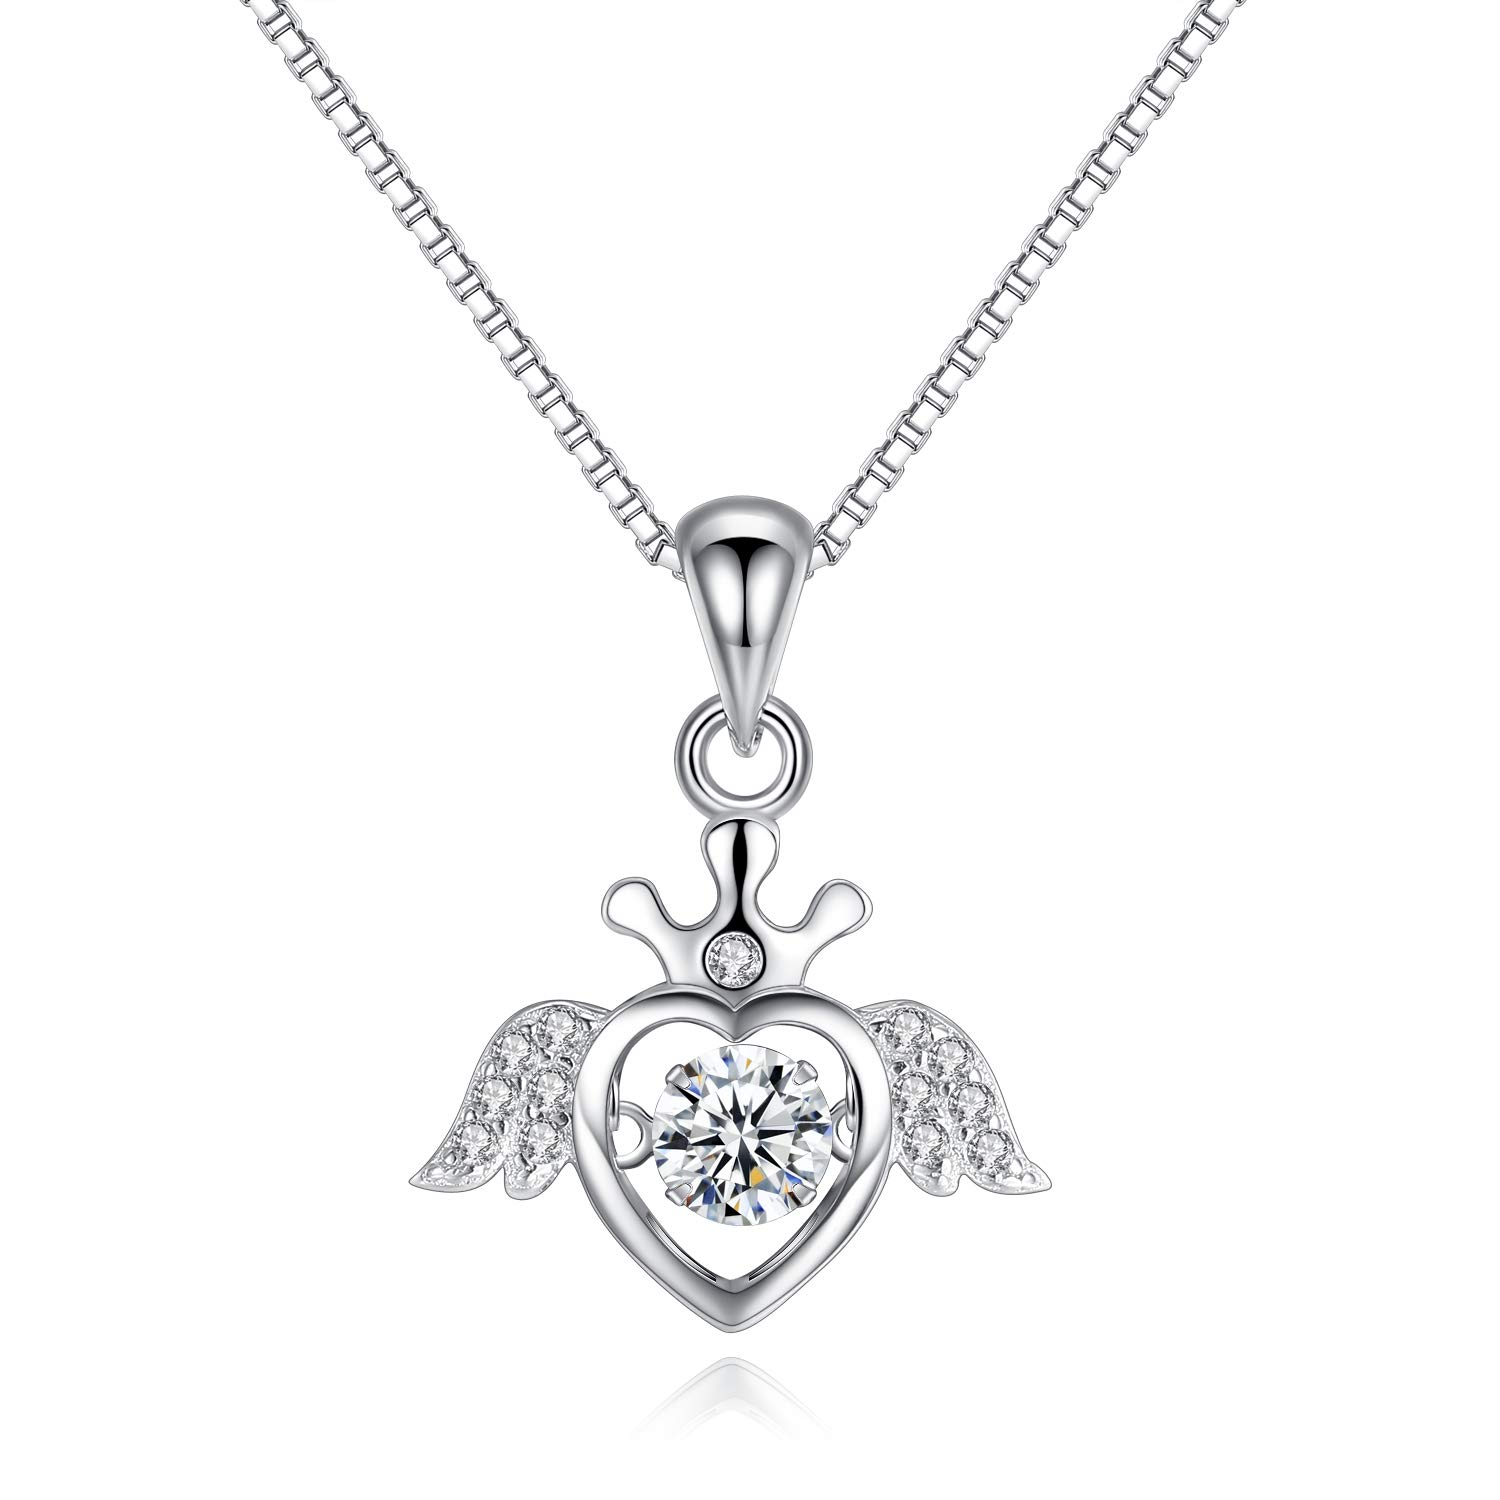 203e93af24b87 Amazon.com: VANA JEWELRY Angel Wing Love Heart Necklaces 925 ...